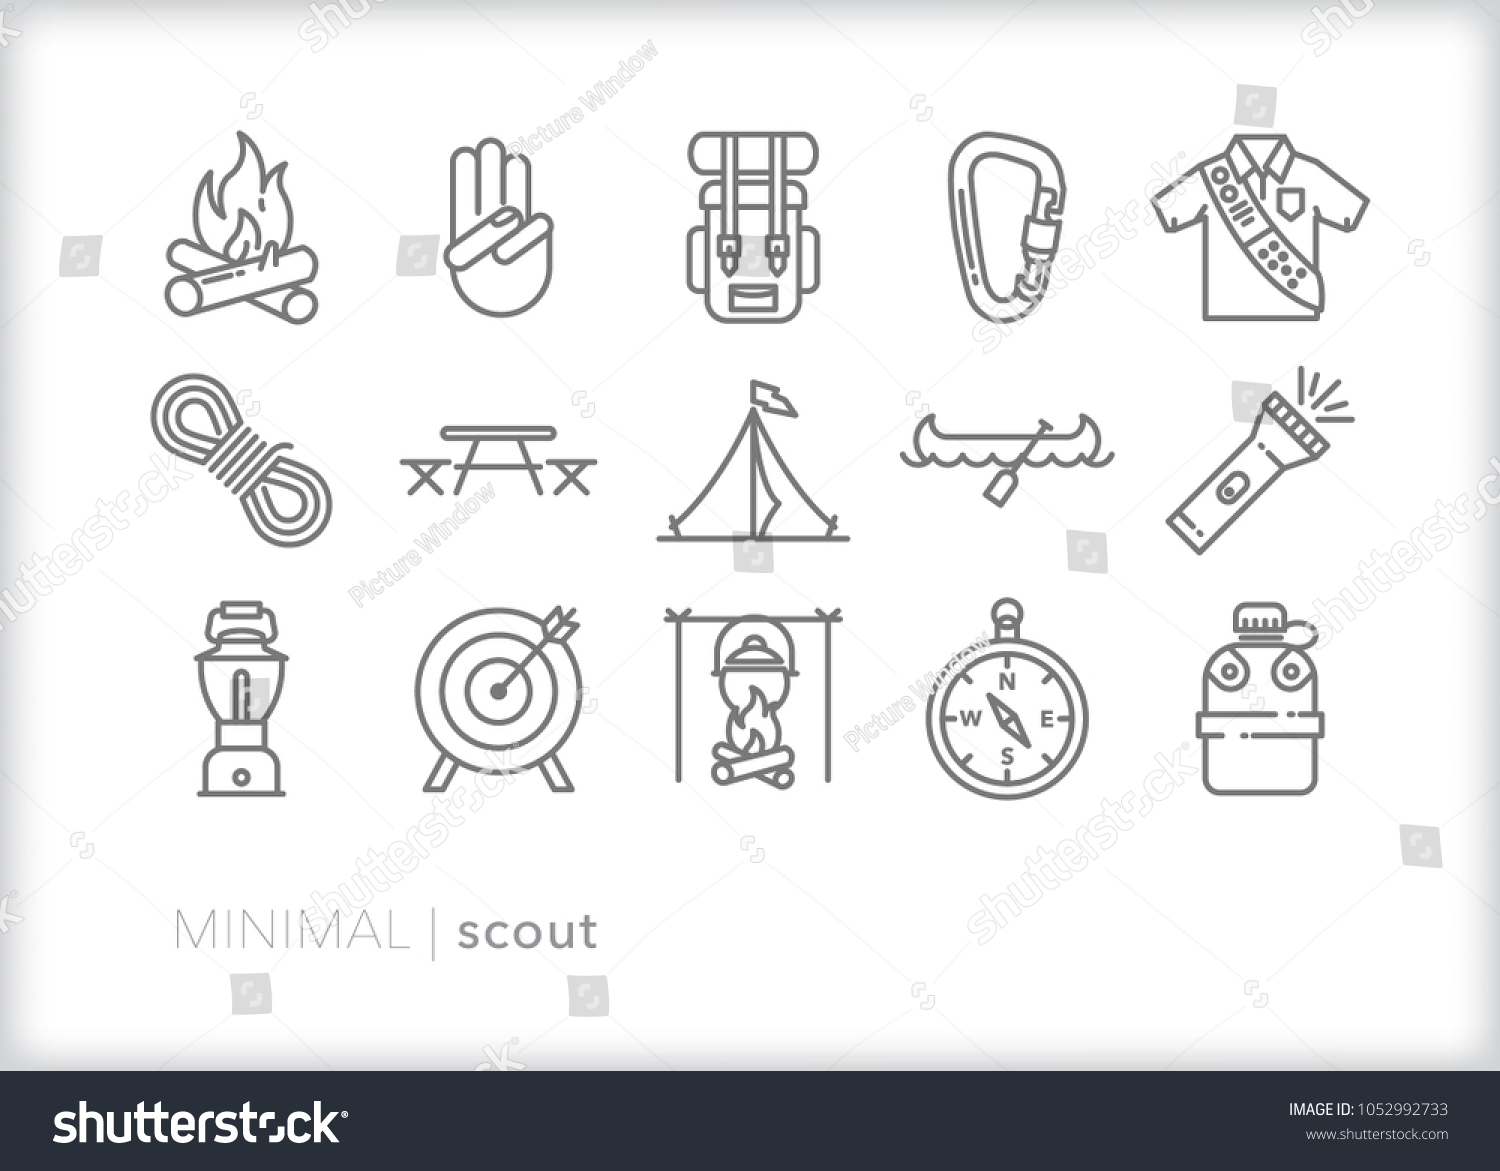 Set 15 Minimal Scout Icons Showing Stock Vector Royalty Free